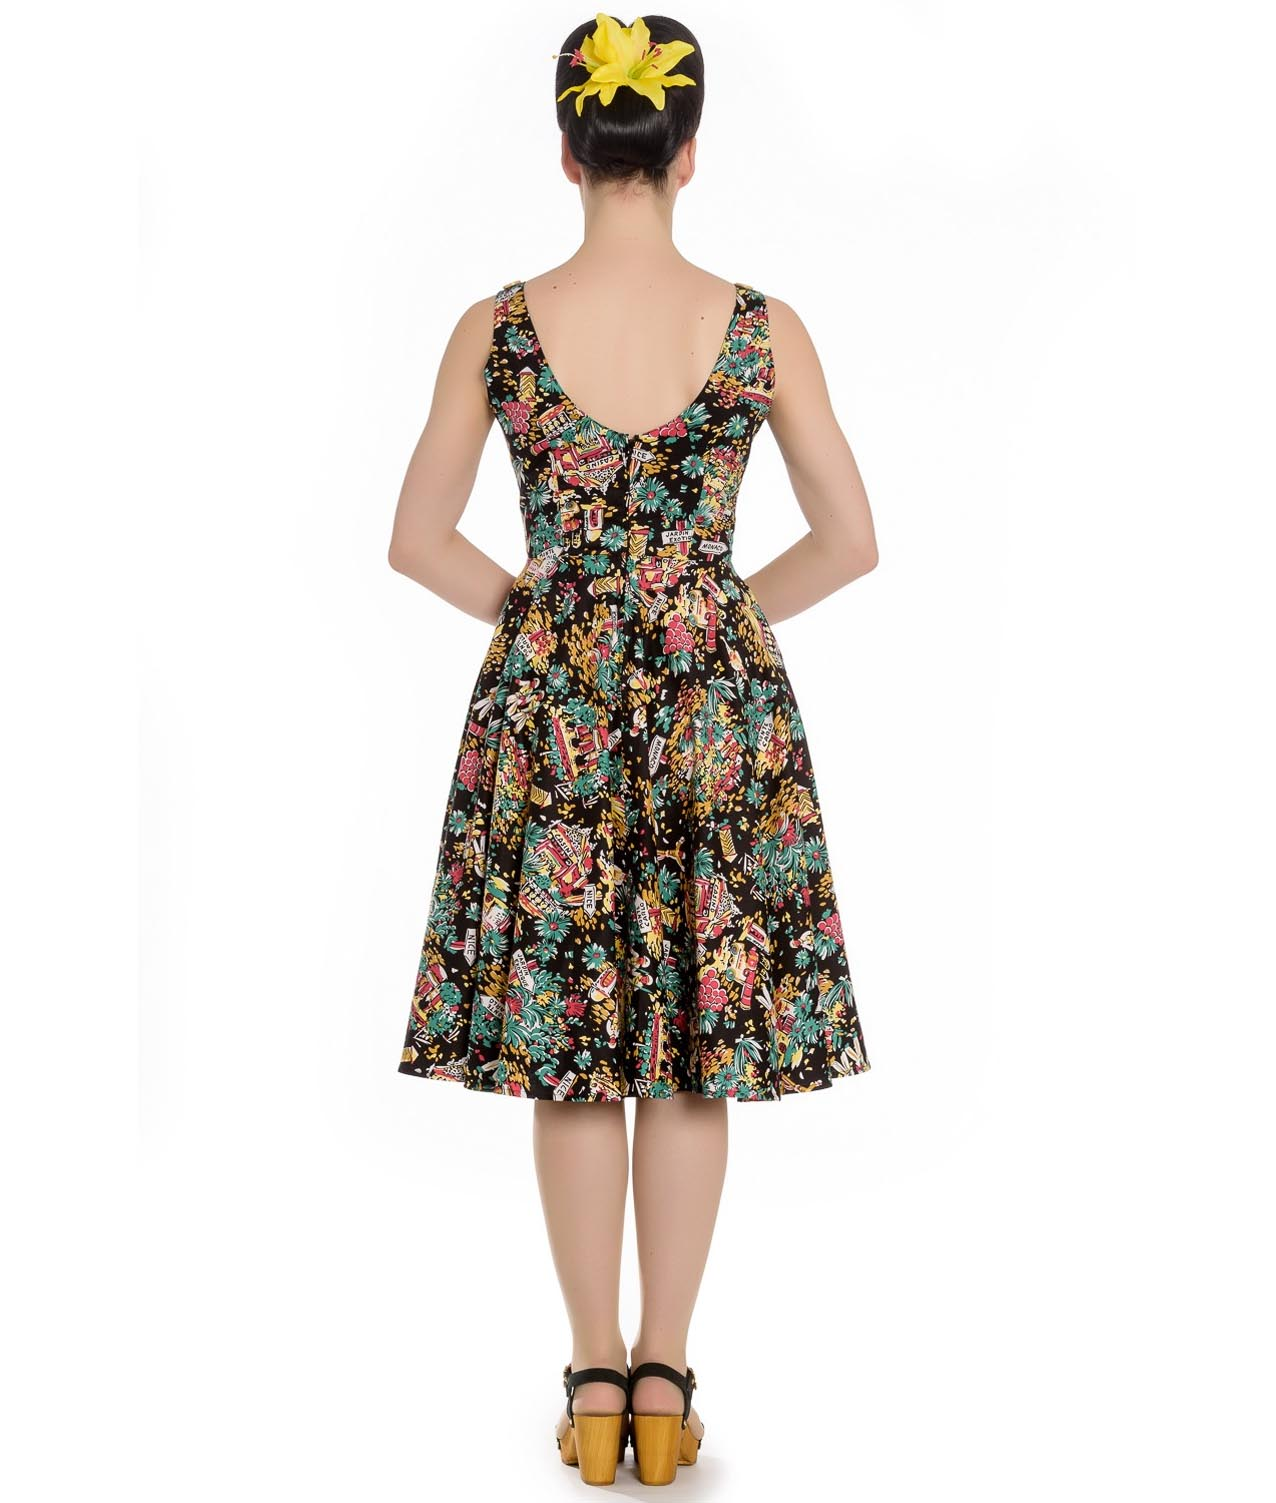 Hell-Bunny-Summer-50s-Black-Dress-MONTE-CARLO-Tropical-Holiday-All-Sizes thumbnail 29